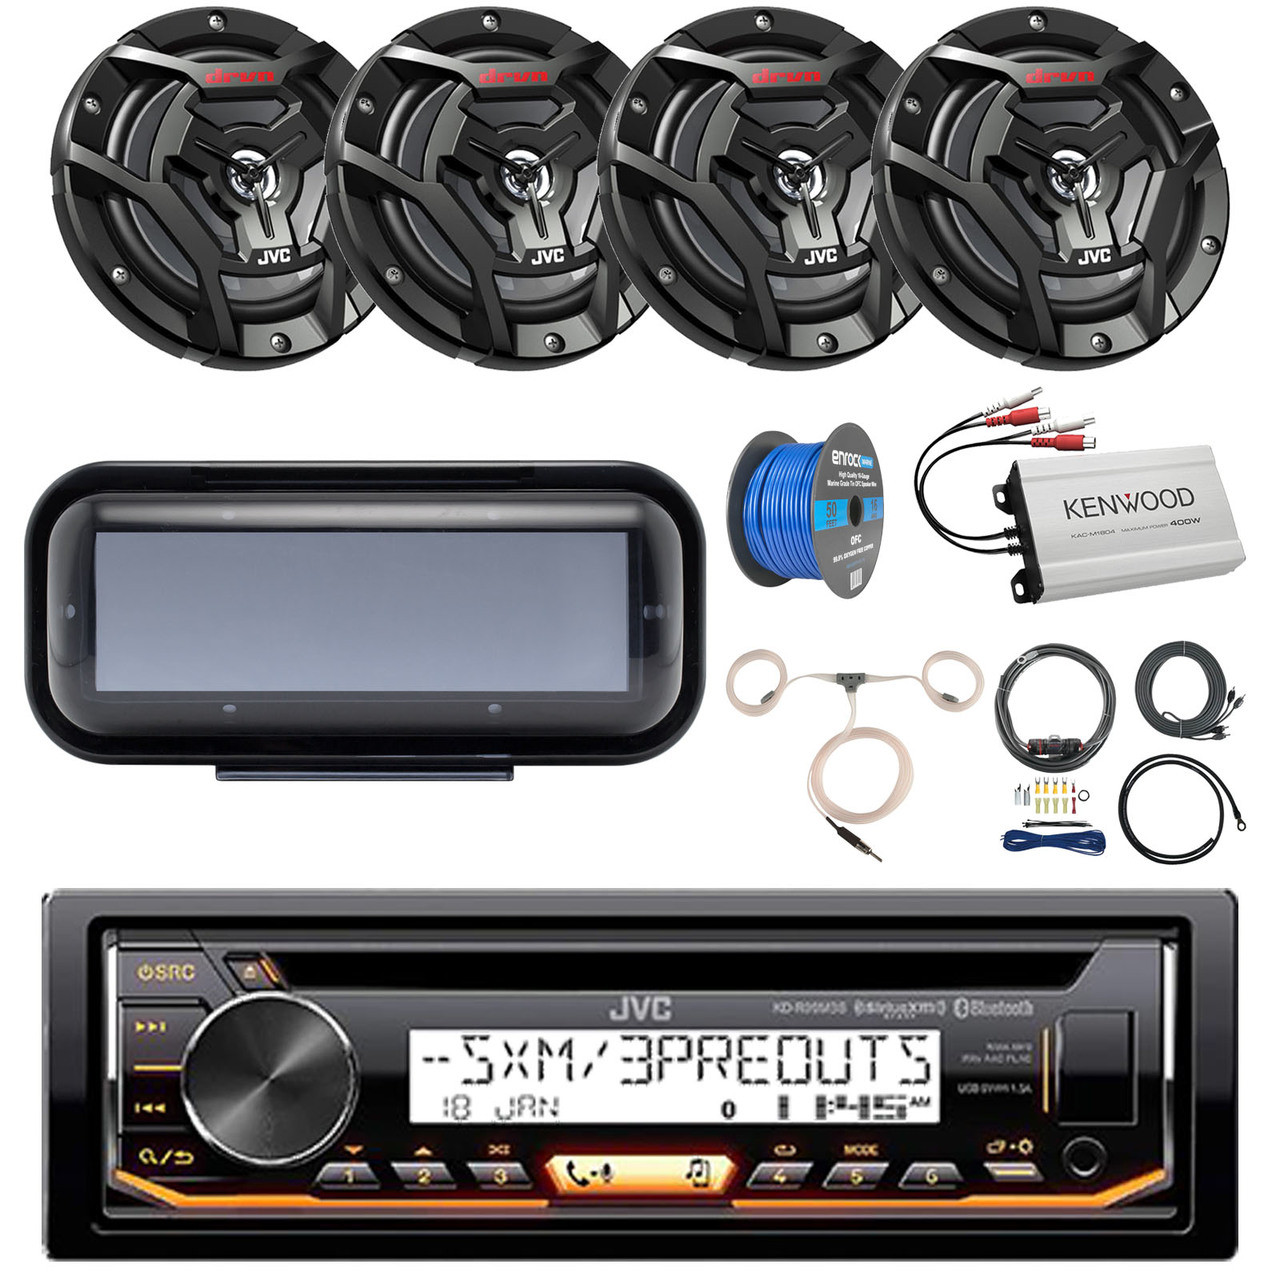 hight resolution of pontoon boat audio package jvc kd r99mbs marine bluetooth cd receiver radio cover